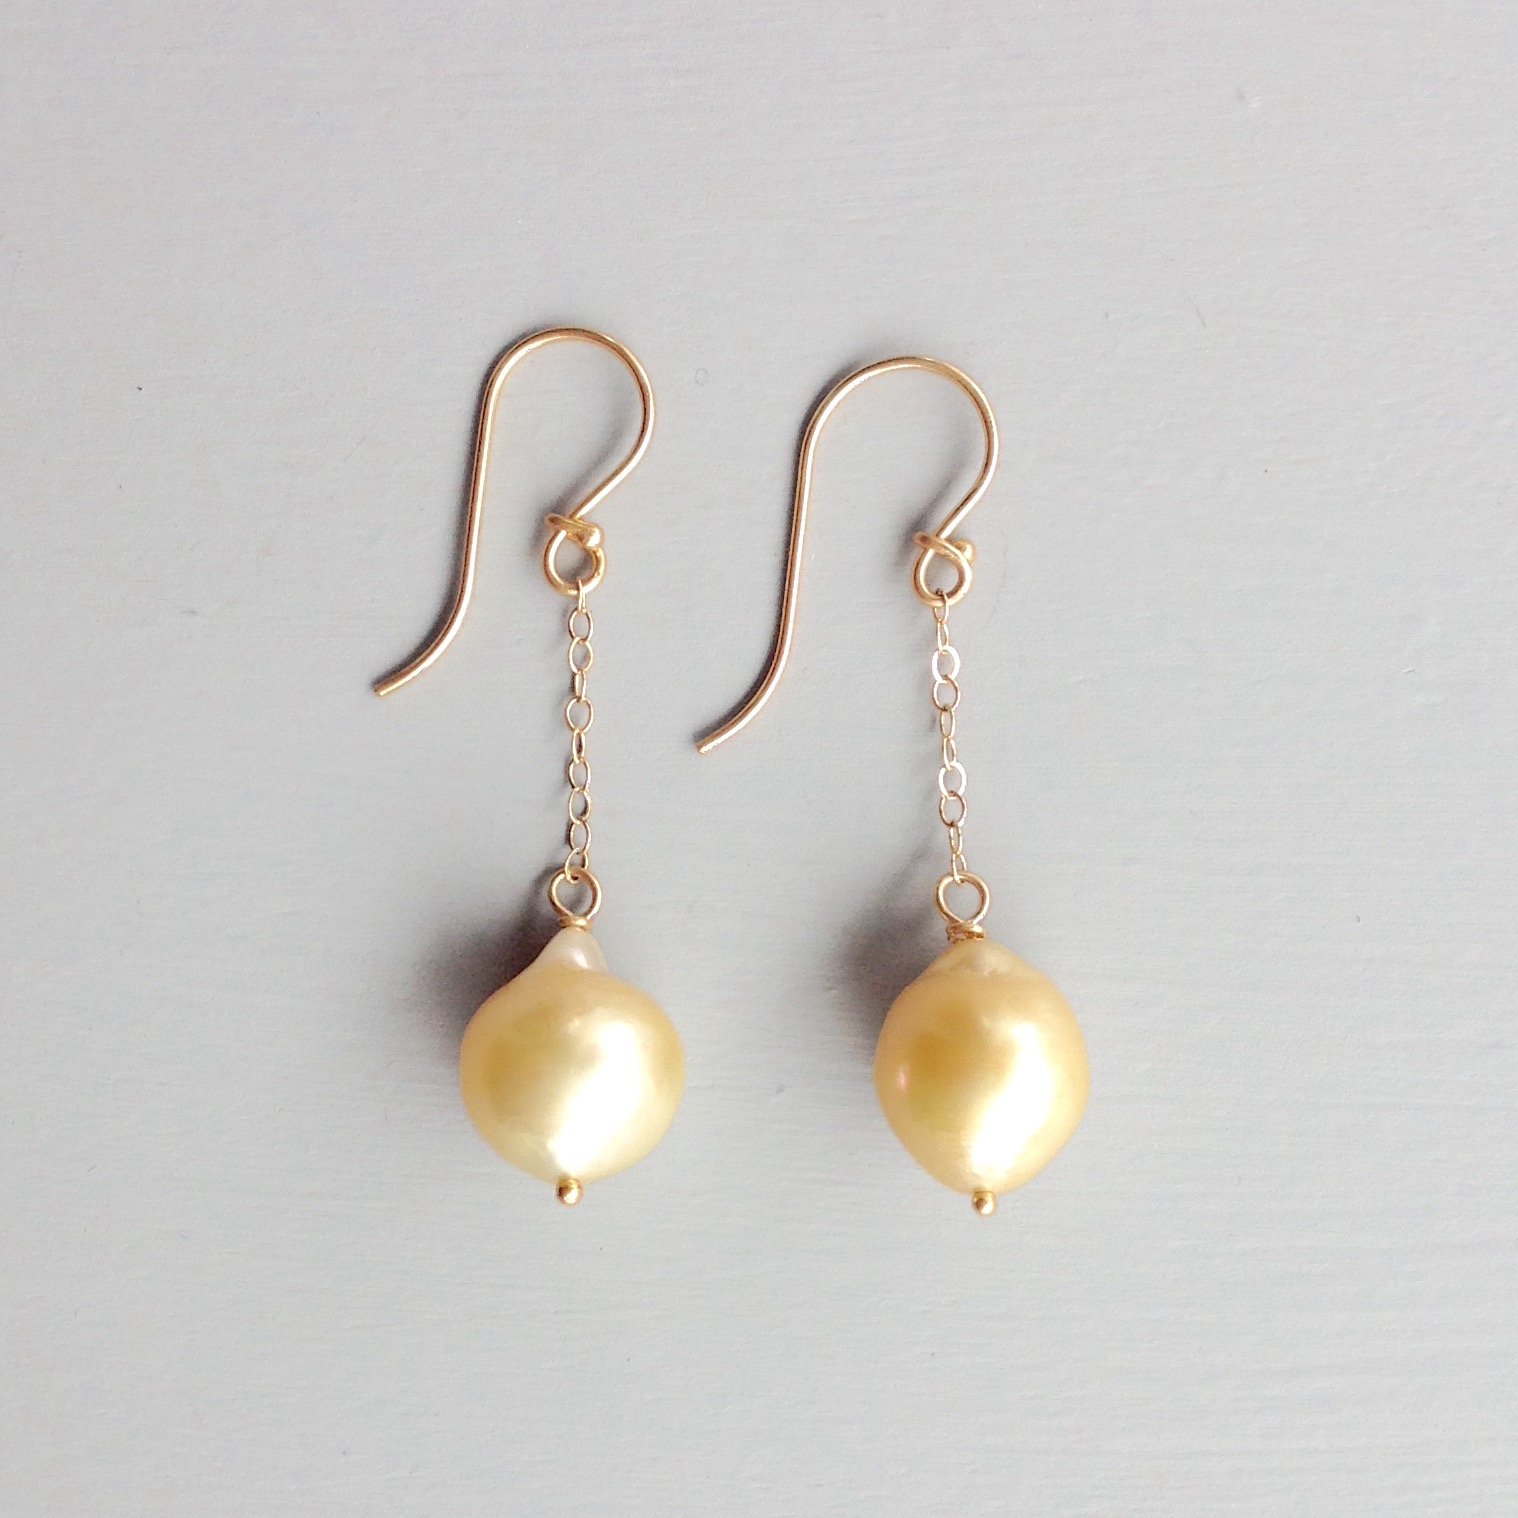 14kt Gold Earrings With Yellow Pearls